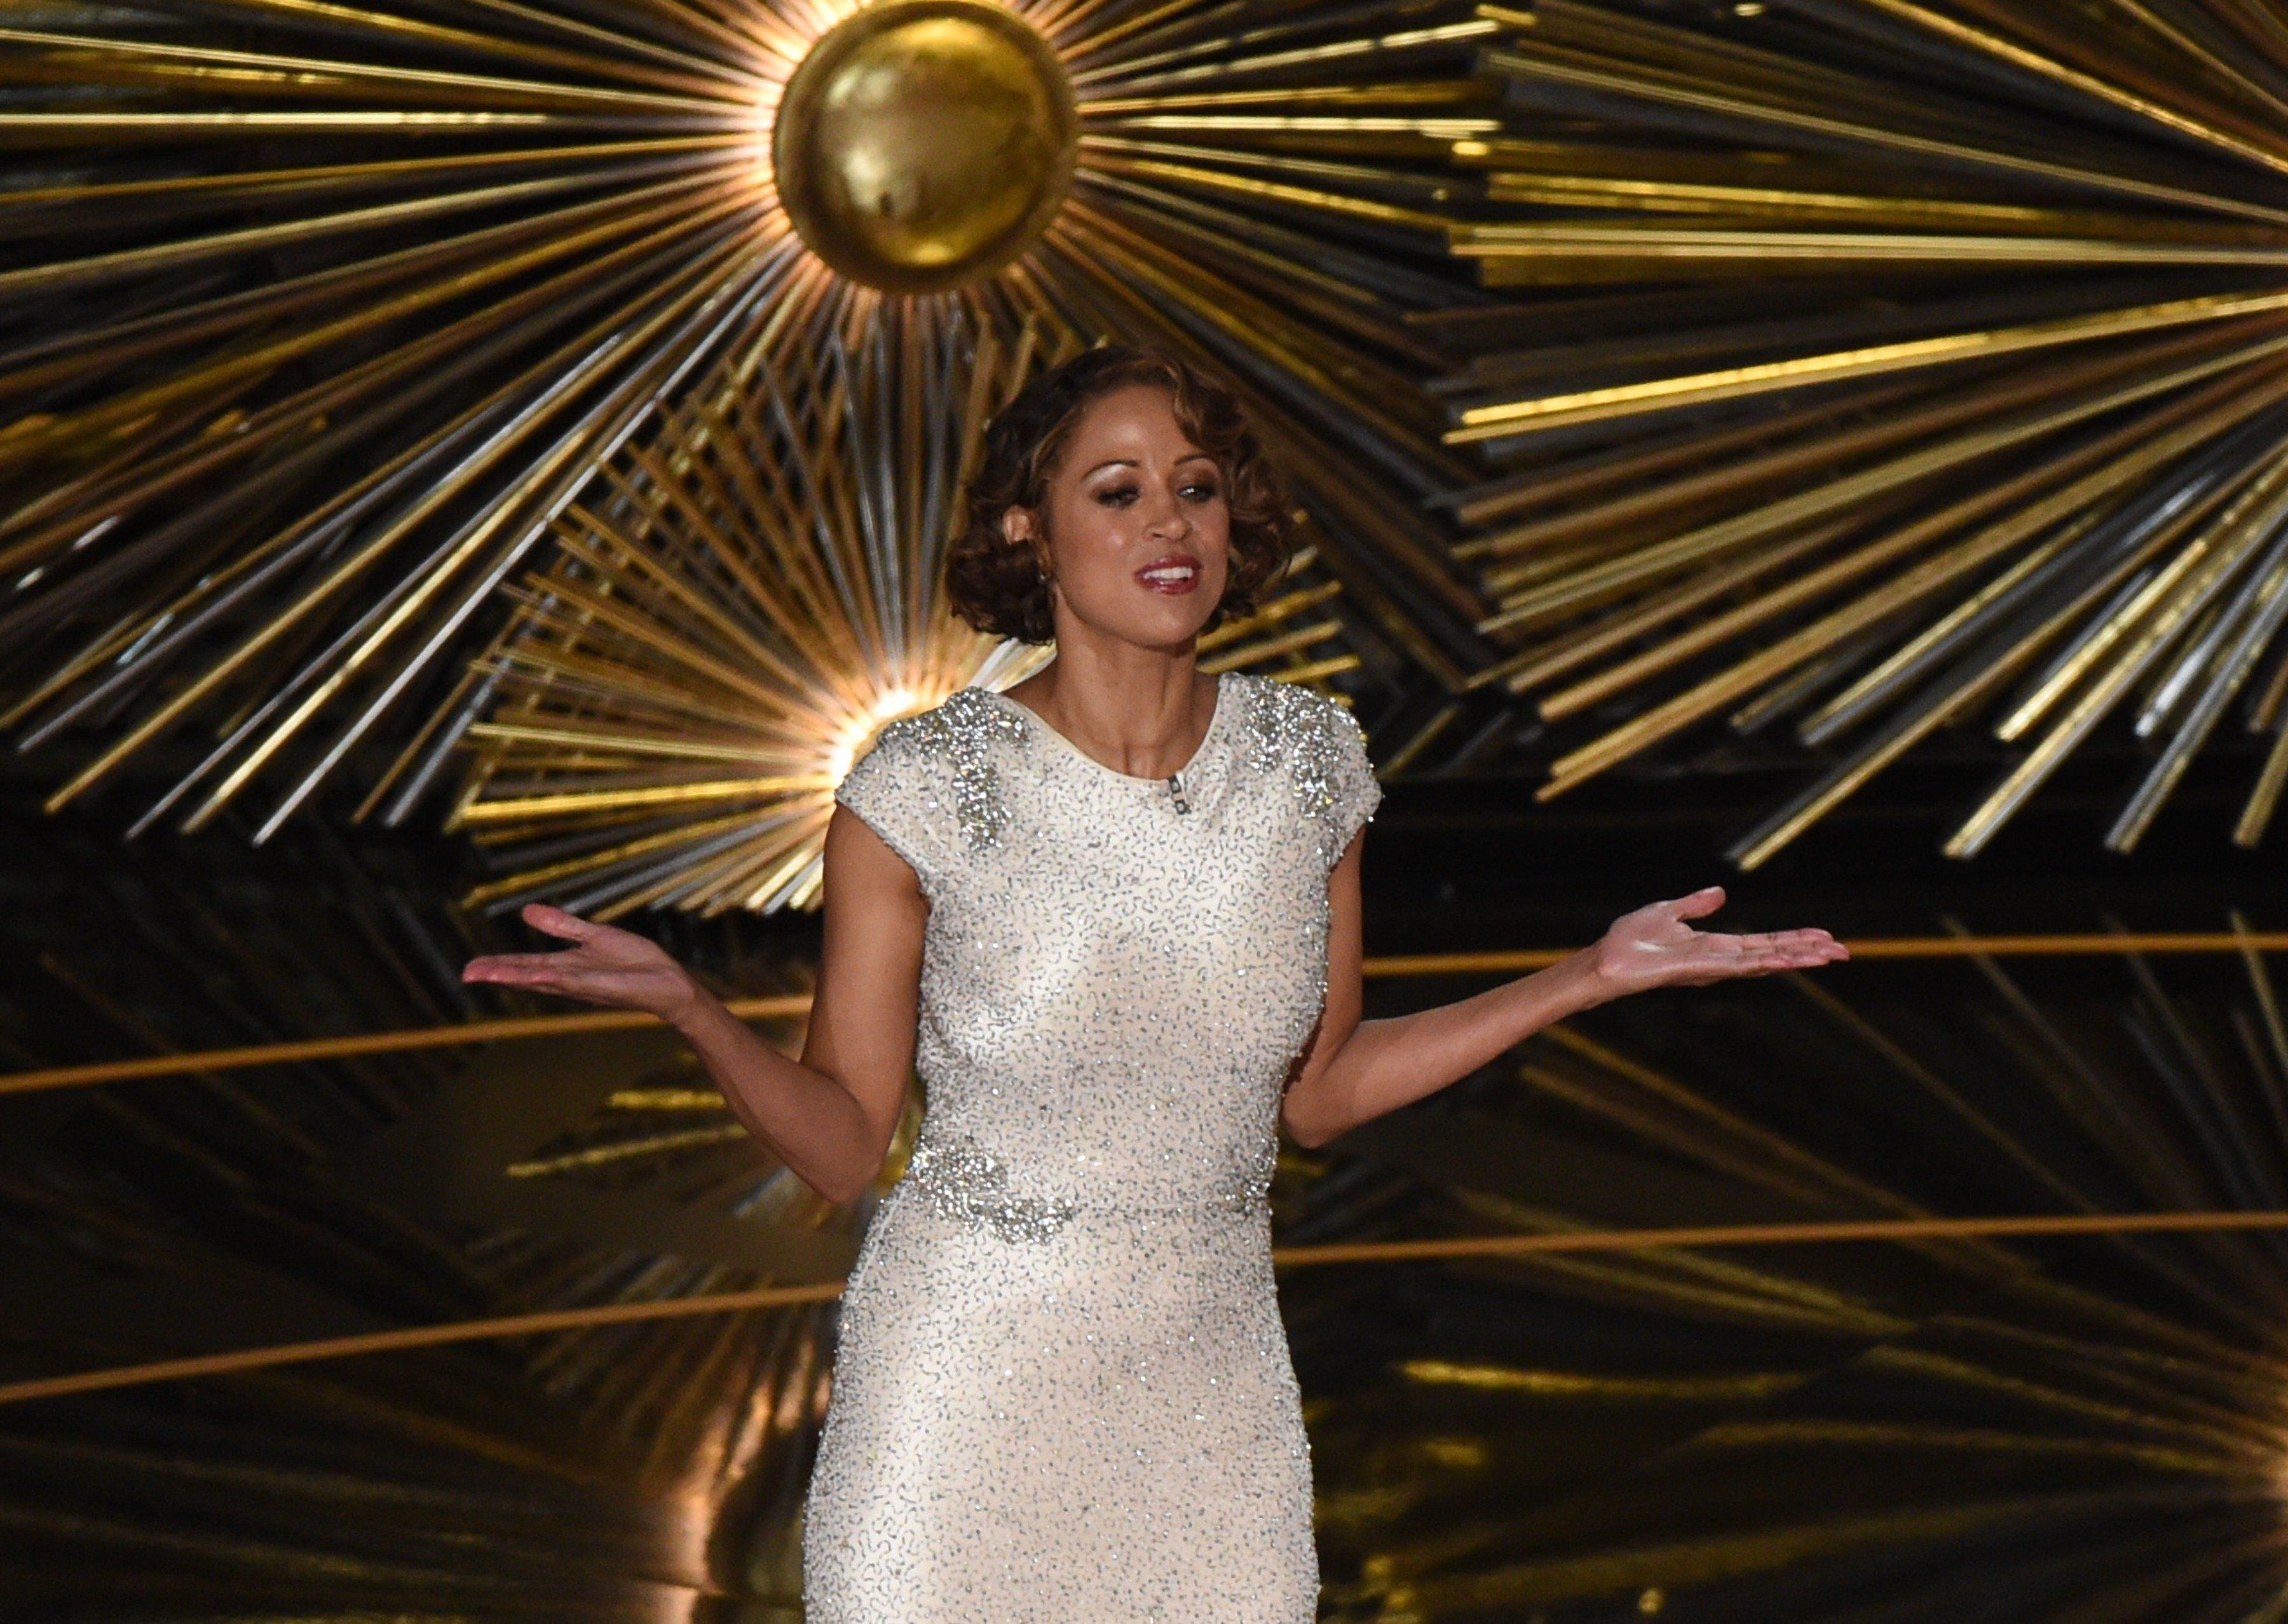 Actress Stacey Dash presents on stage at the 88th Oscars on February 28, 2016 in Hollywood, California. AFP PHOTO / MARK RALSTON / AFP / MARK RALSTON        (Photo credit should read MARK RALSTON/AFP/Getty Images)